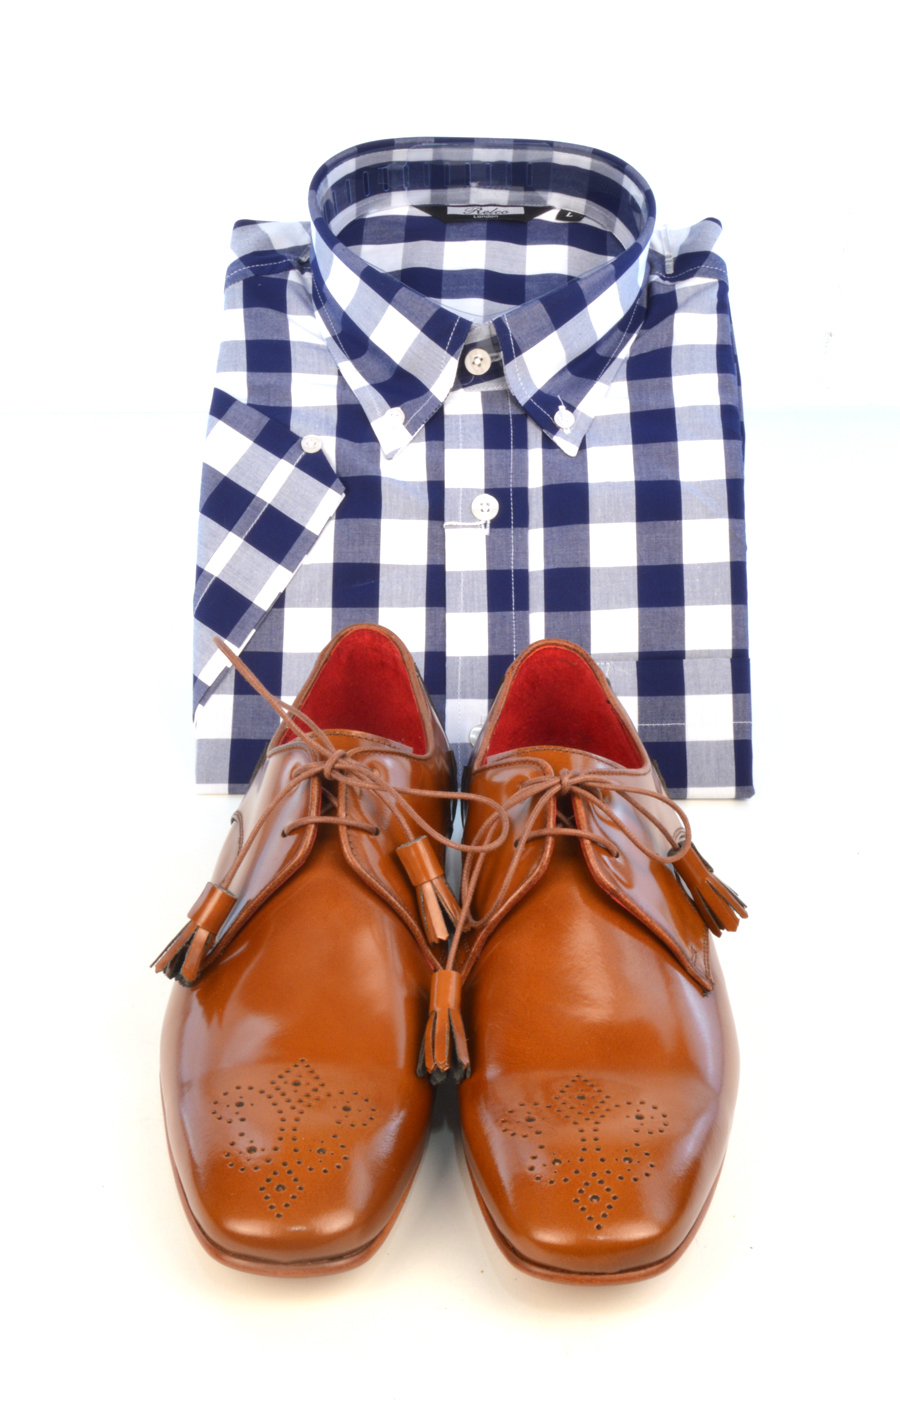 modshoes-jeffery-west-and-check-shirt-01